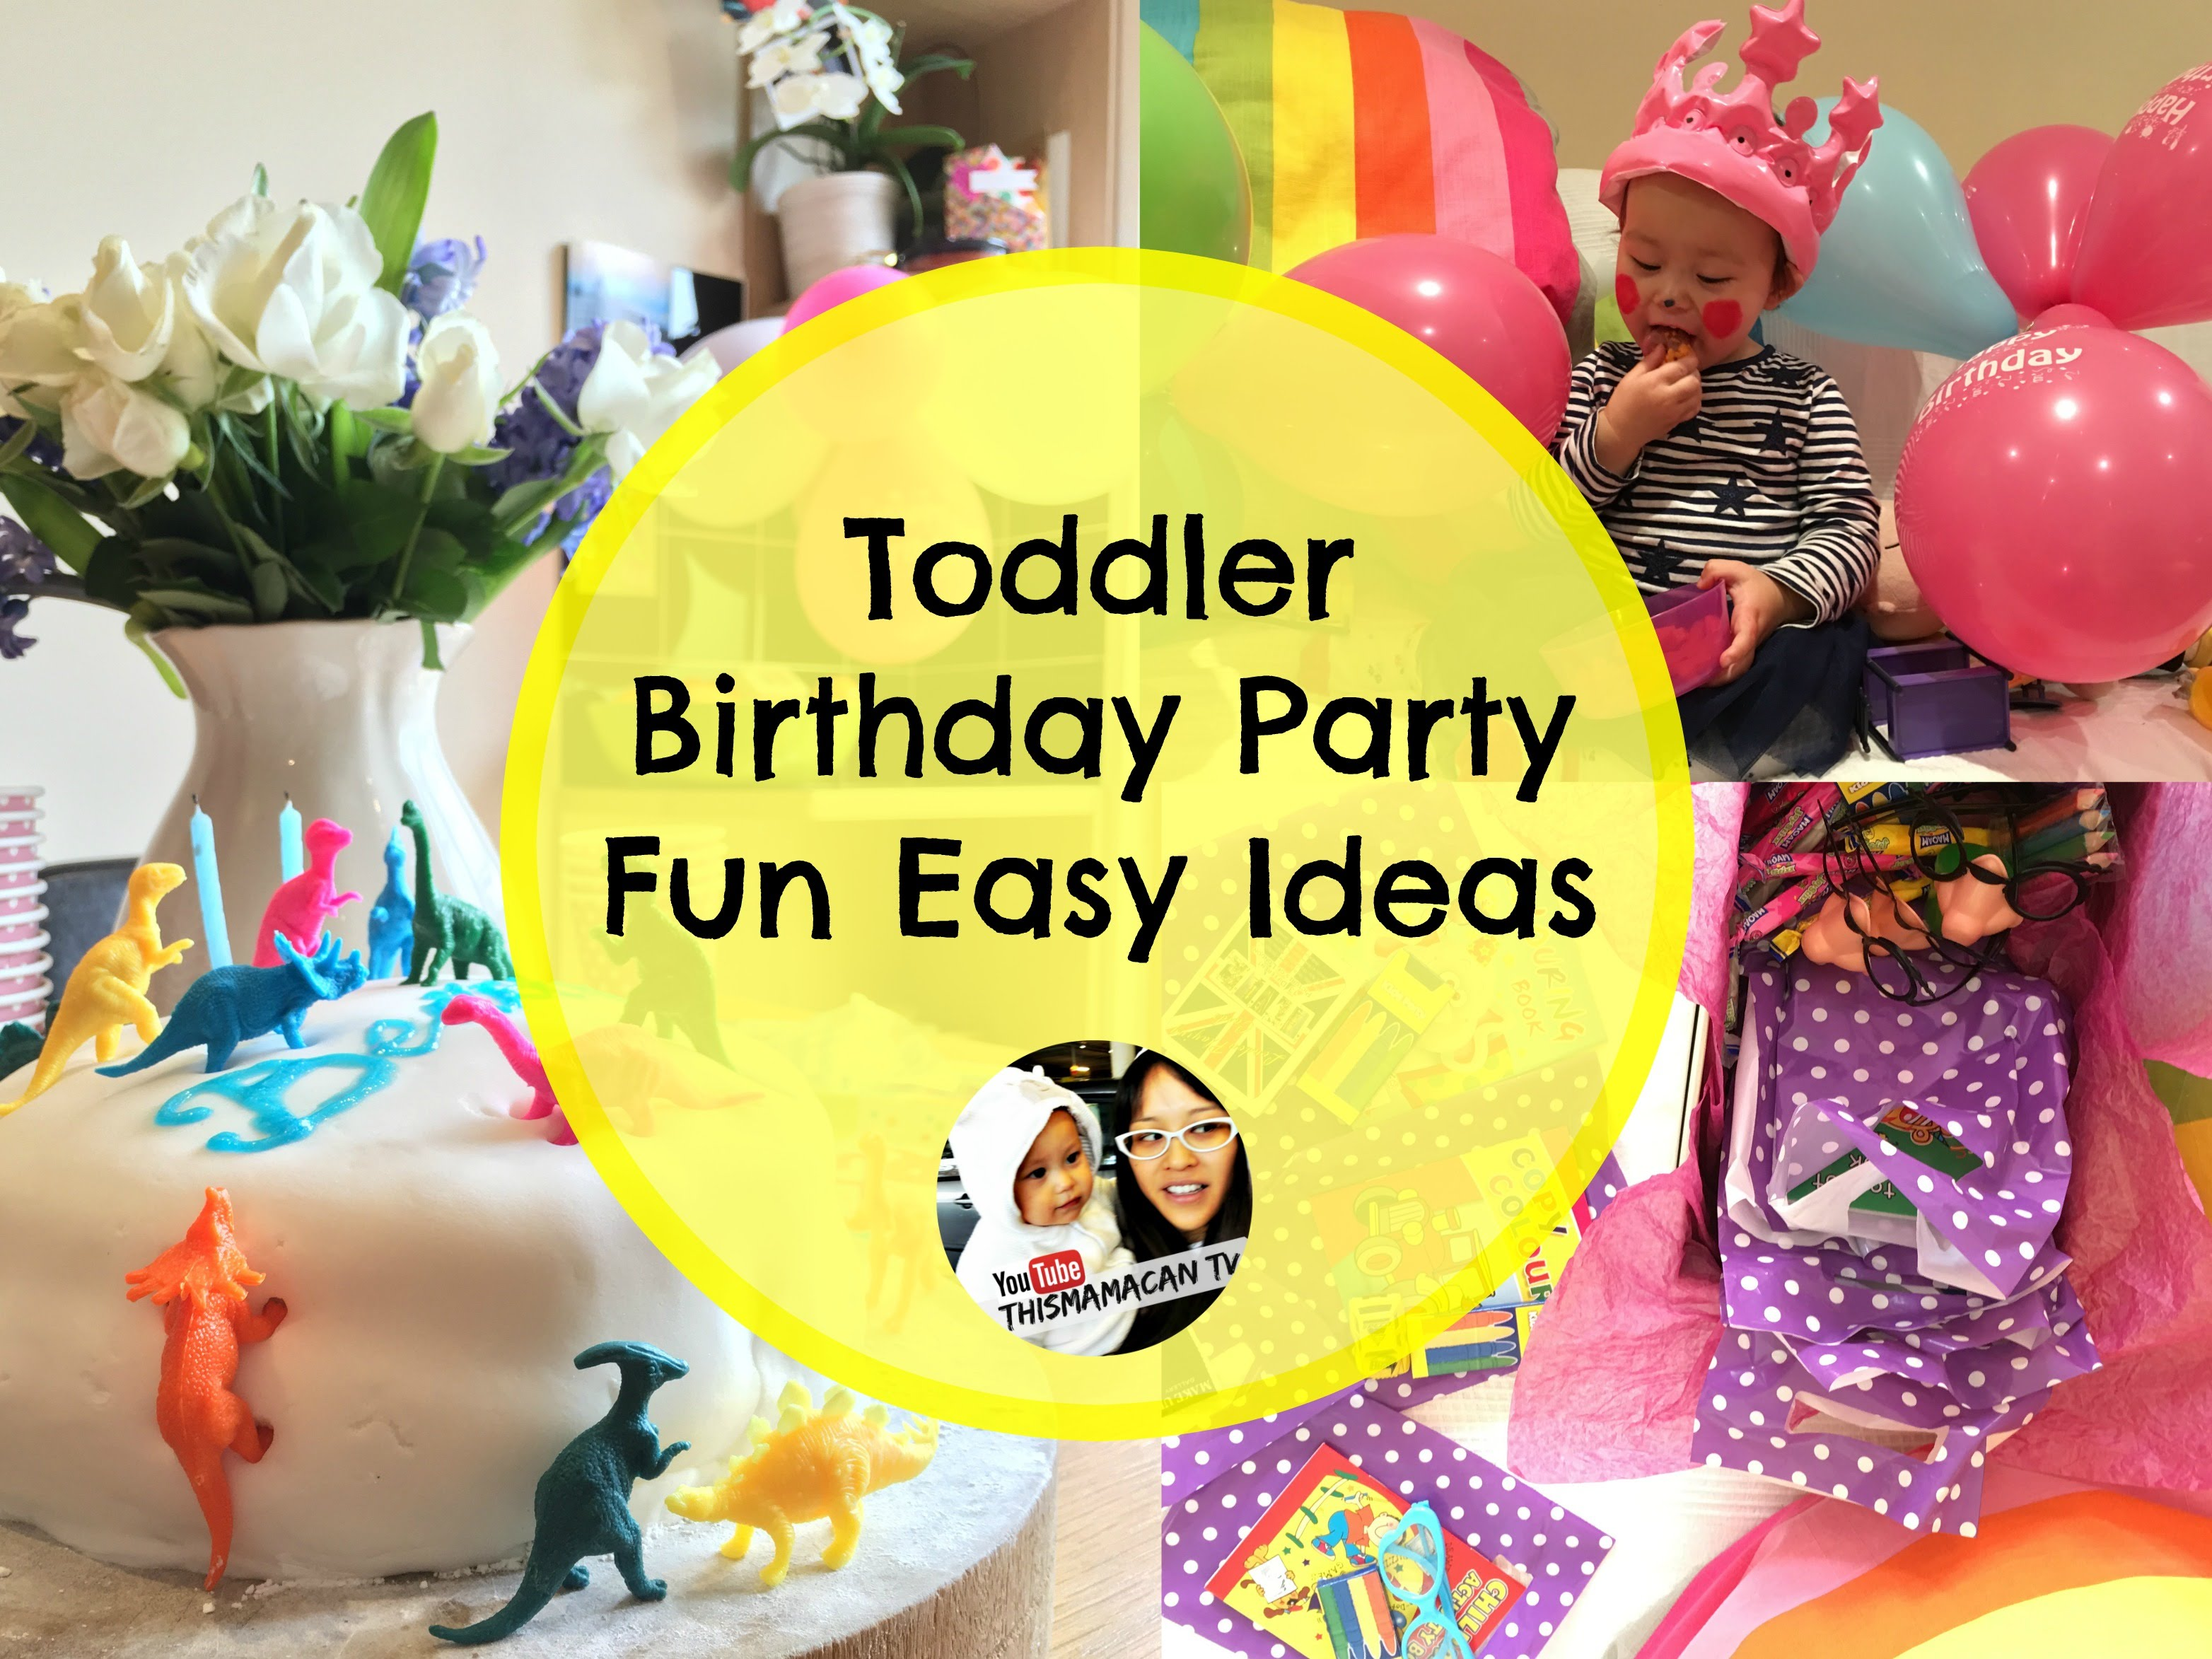 fun activities for birthday parties at home ; maxresdefault